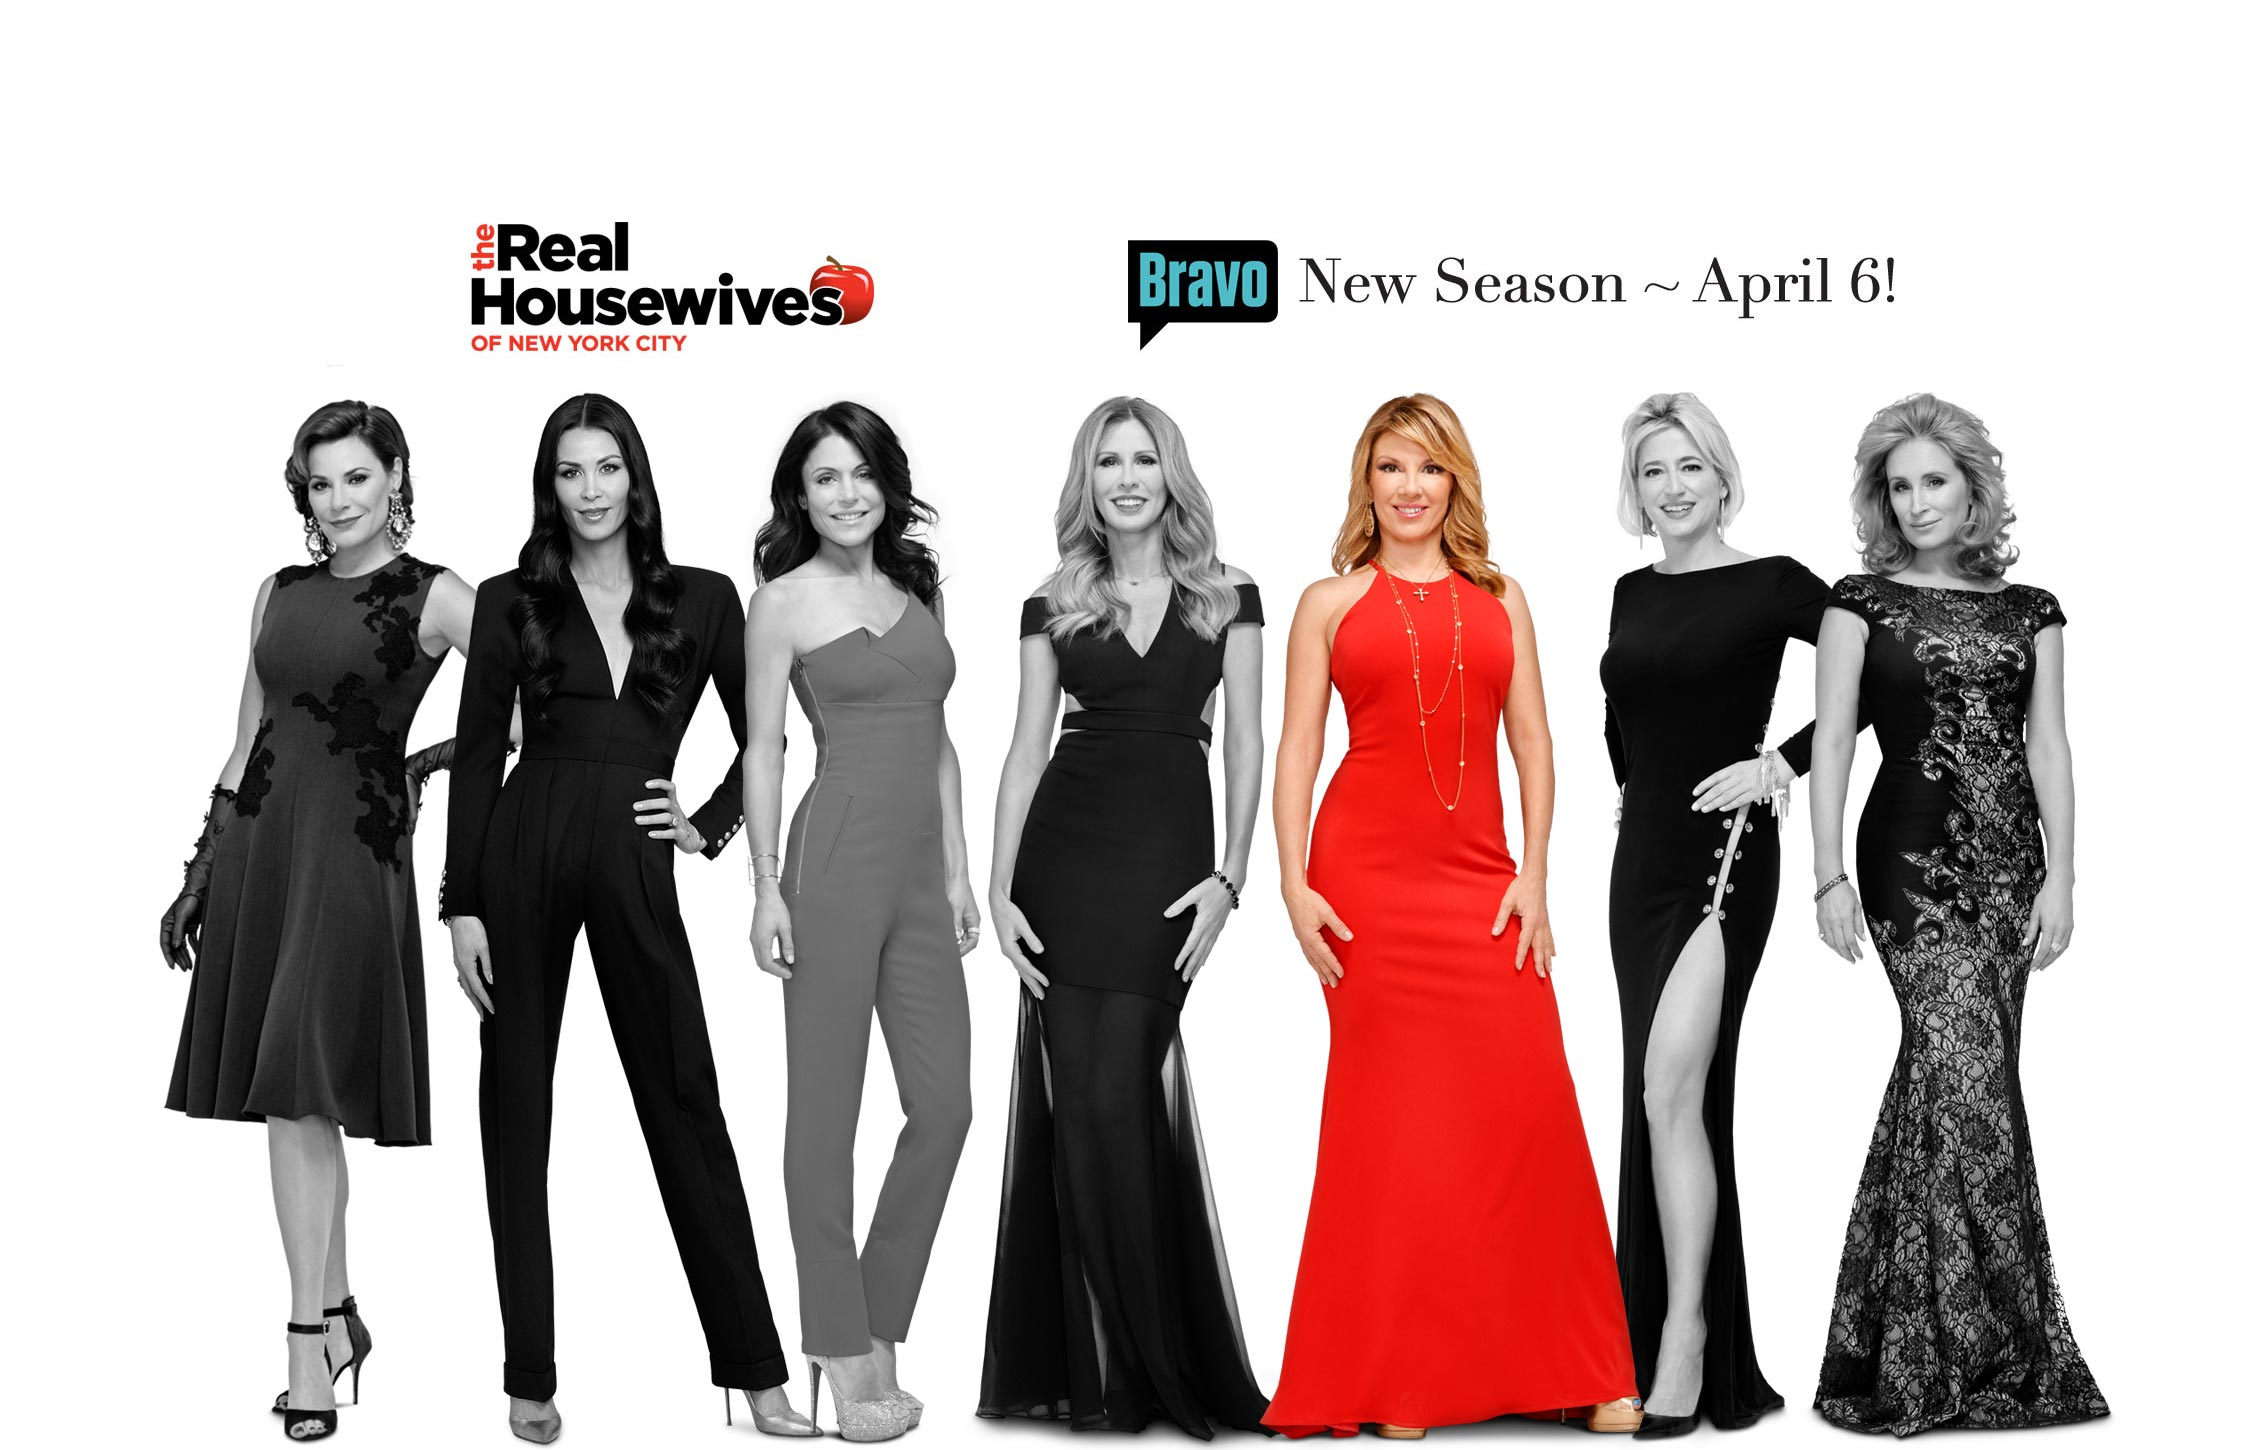 Real Housewives of New York air April 6th